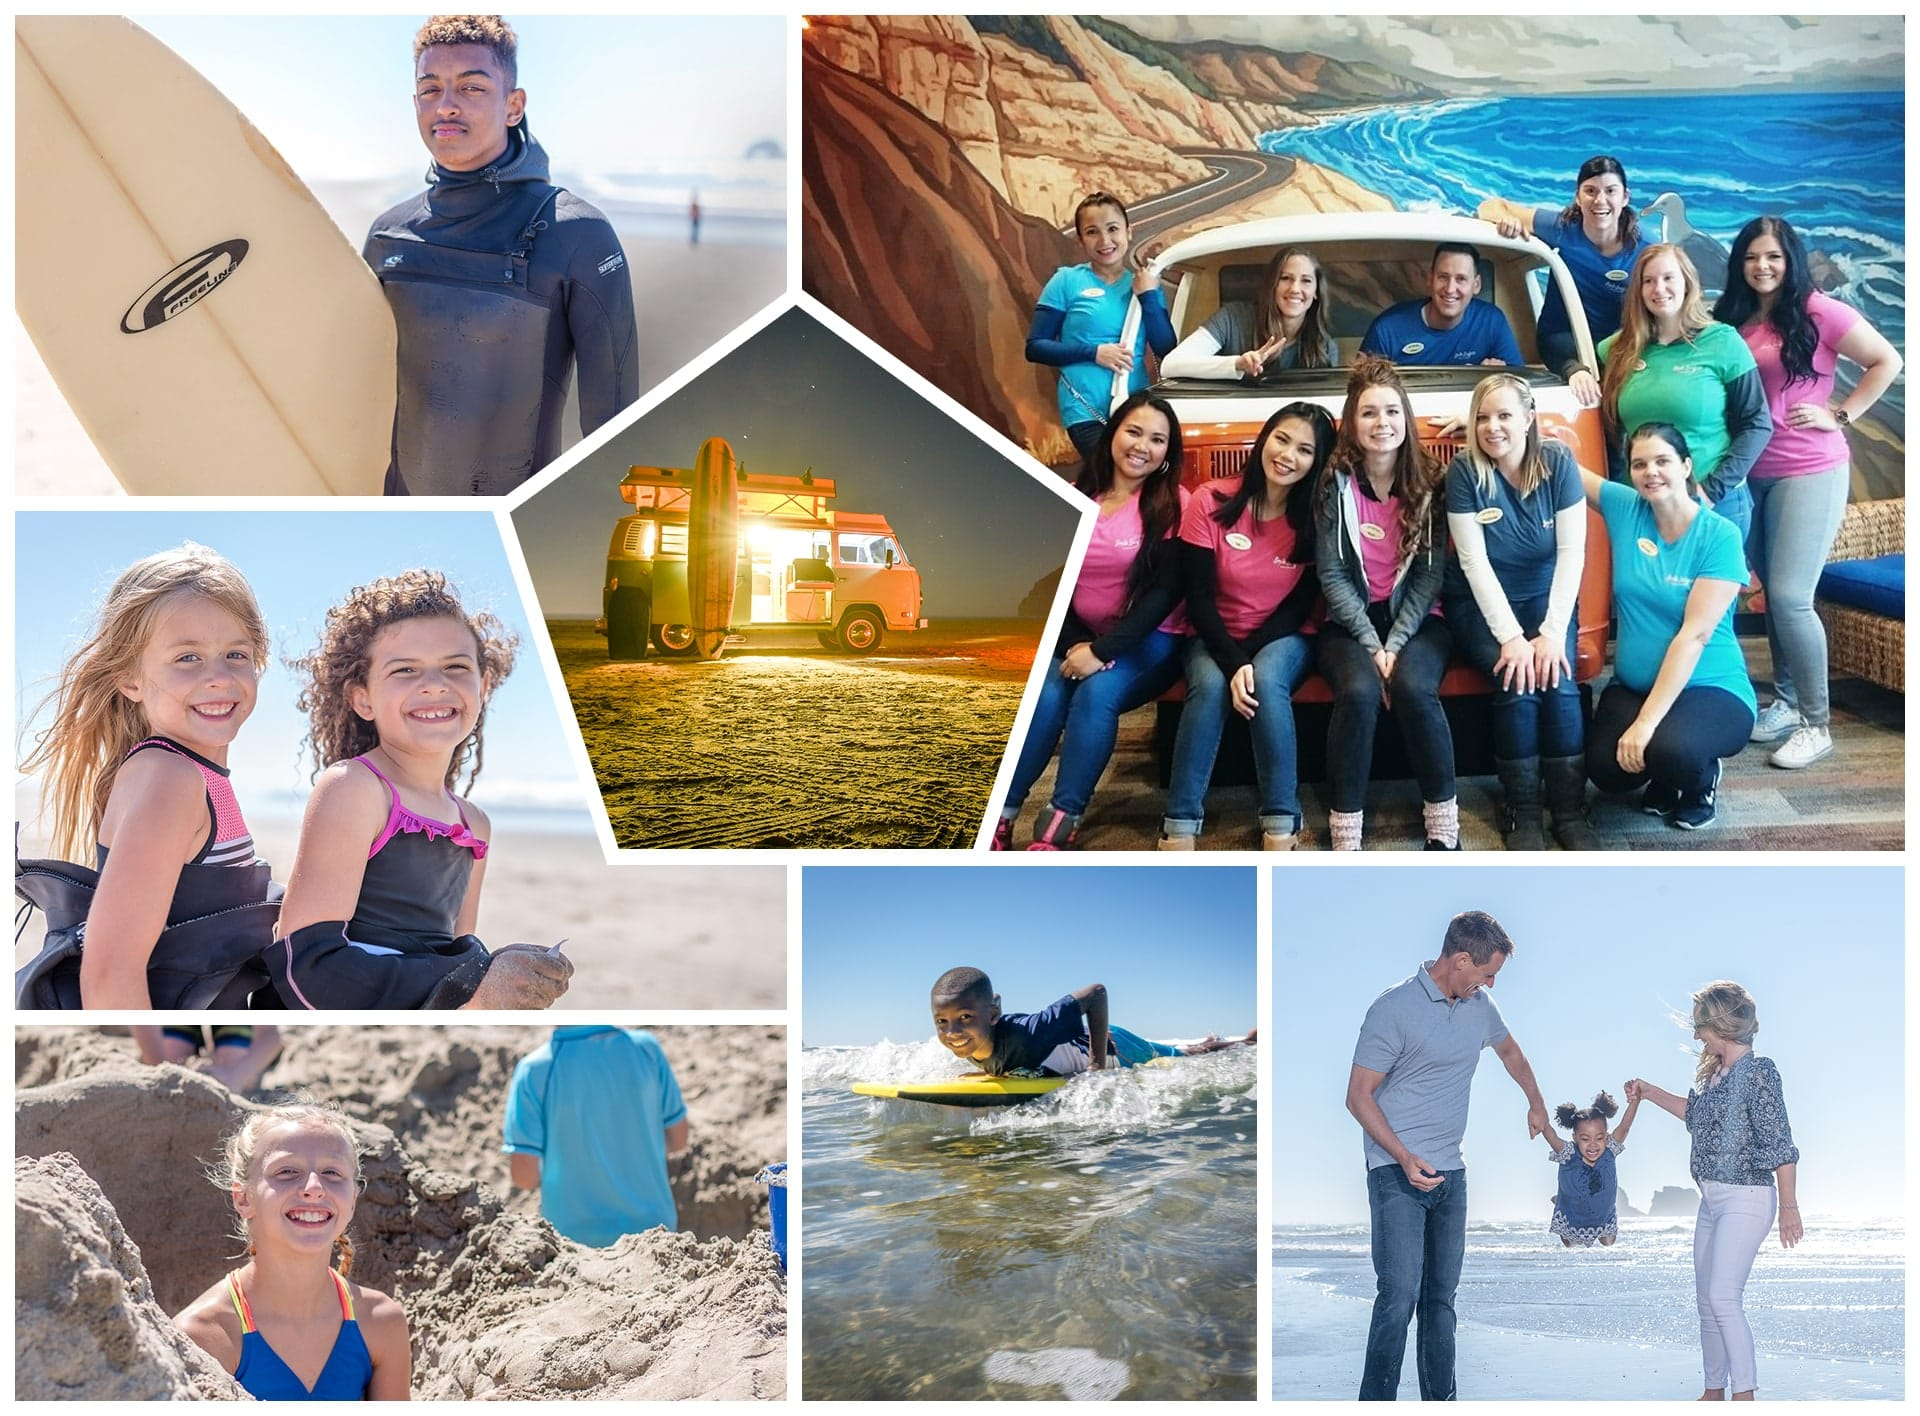 Collage of photos of Sumner dentist and his family having fun on the beach